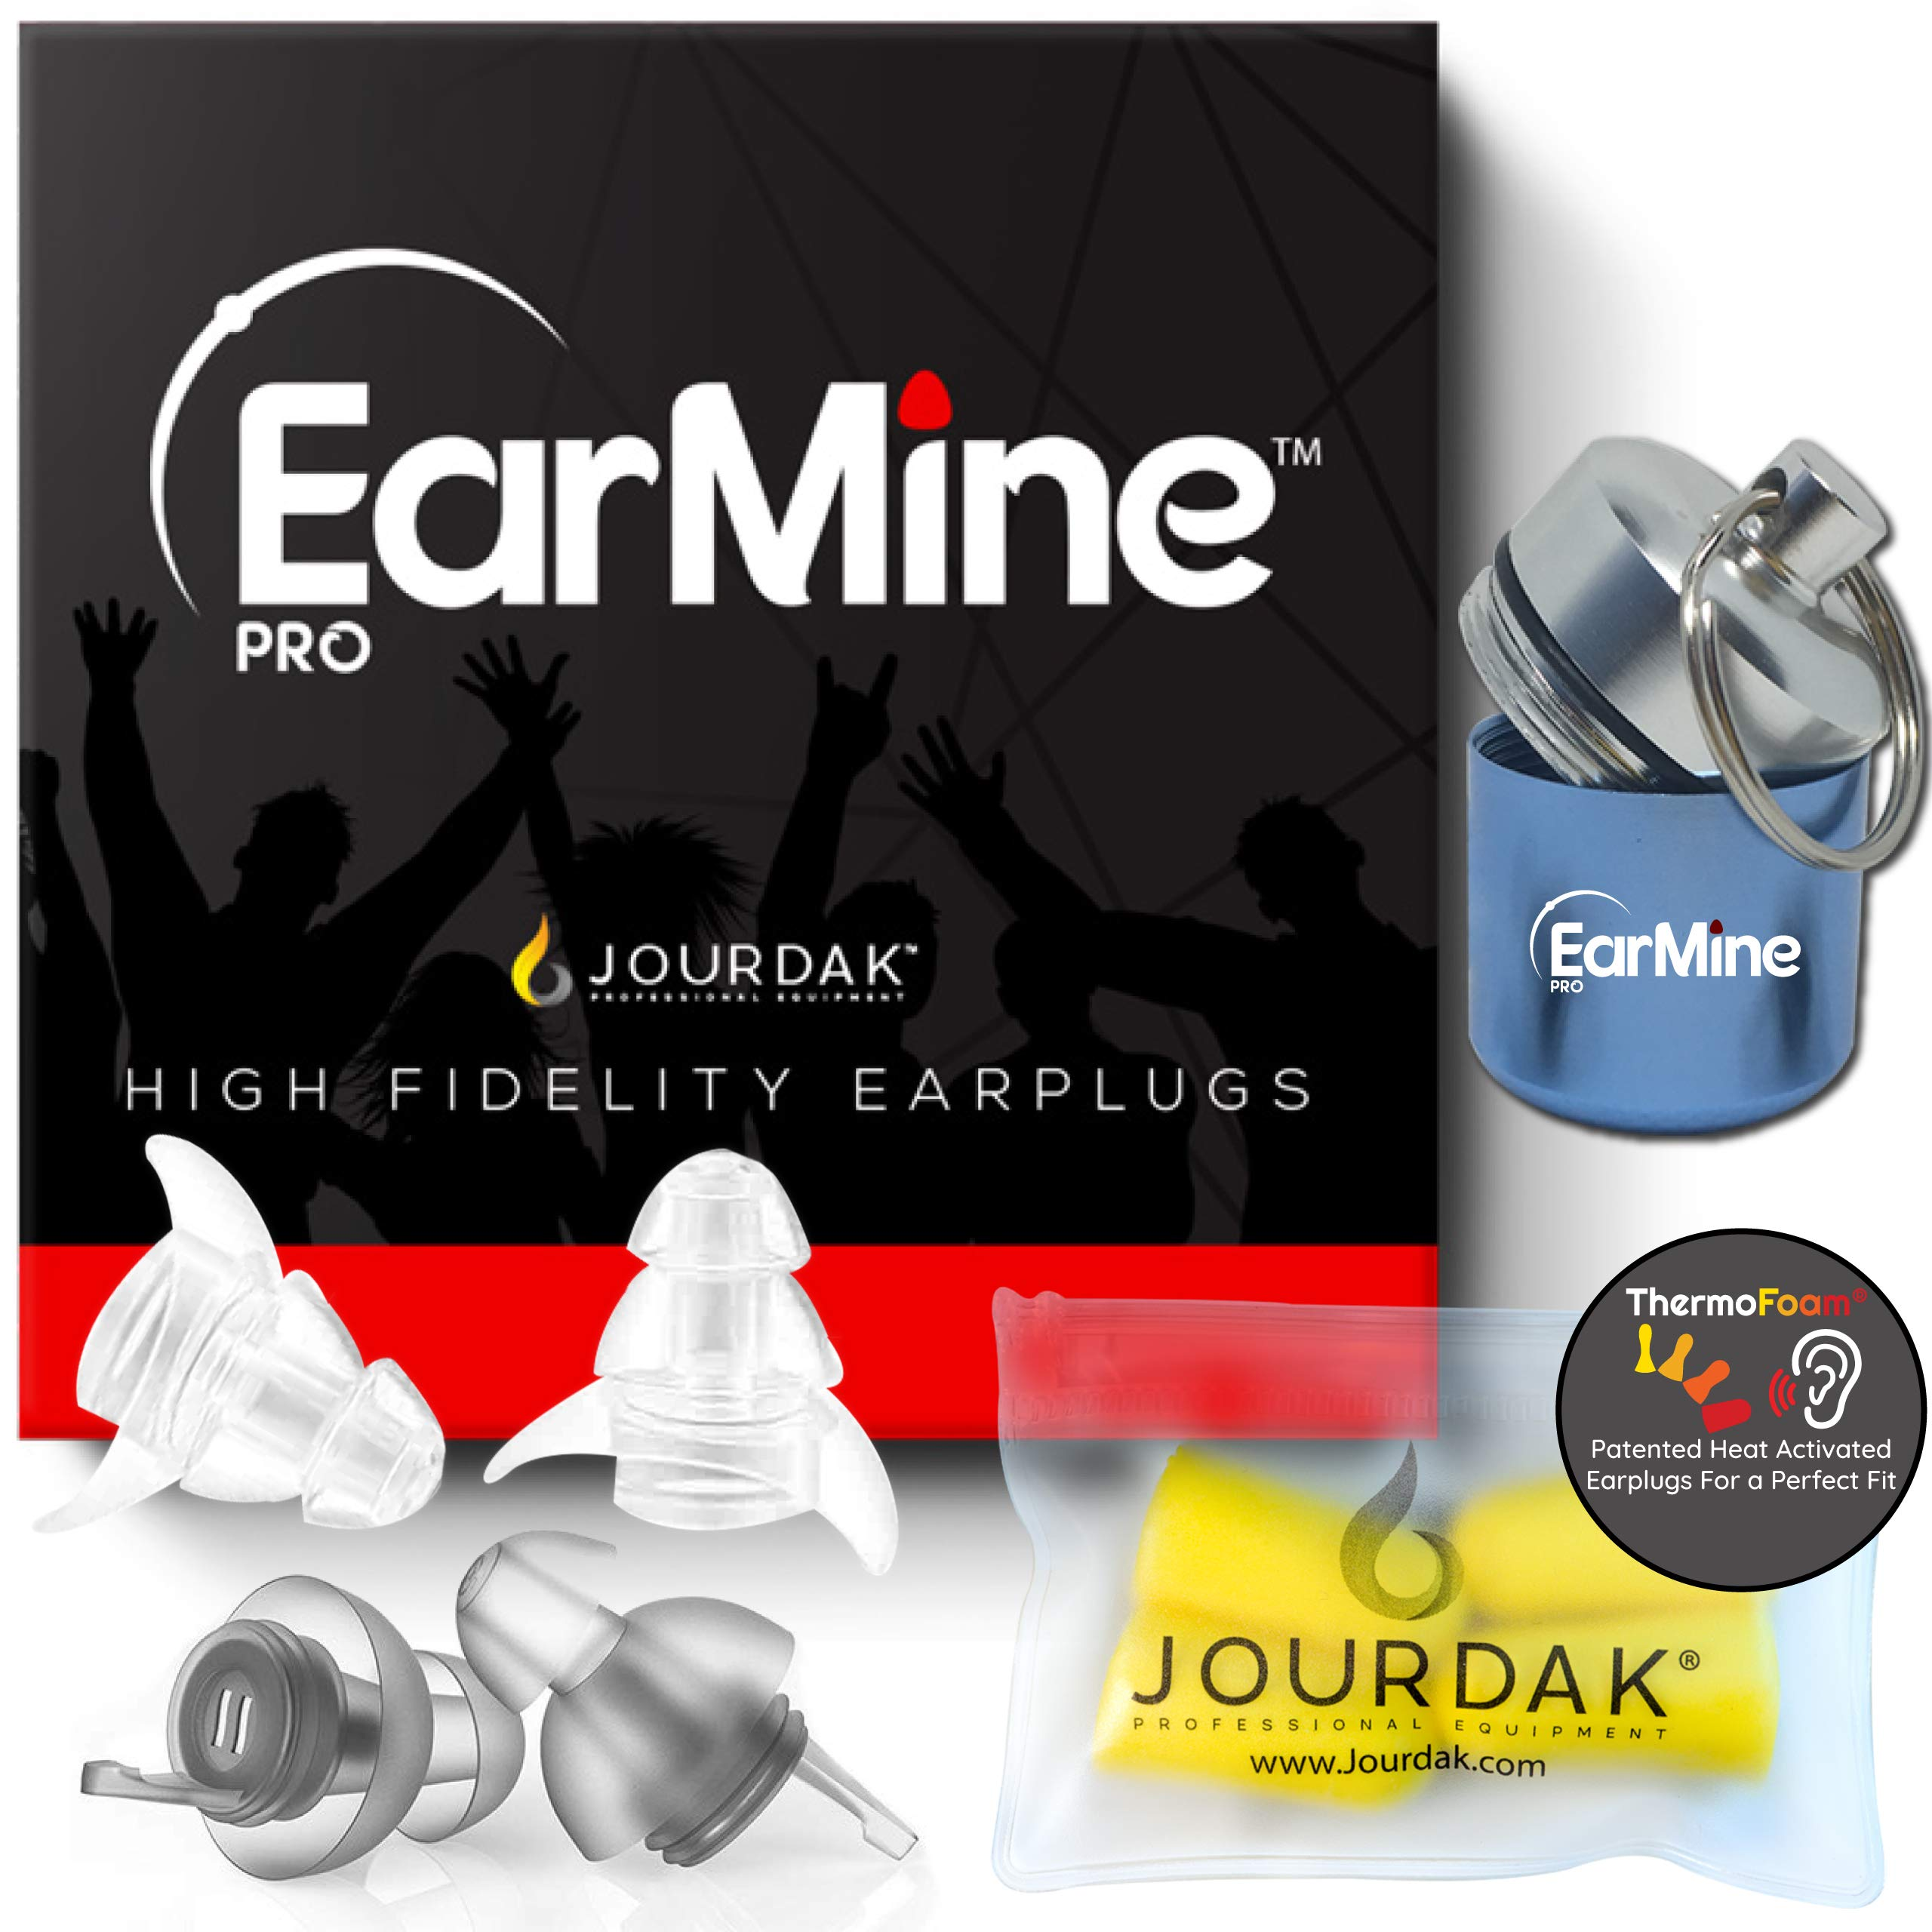 New High Fidelity Ear Plugs by Jourdak - Hearing Protection for Concerts Musicians Motorcycles, Loud Events - Help Cancel Reduce or Filter Out Noise at Harmful Decibel Levels w/ Sensitivity Conditions